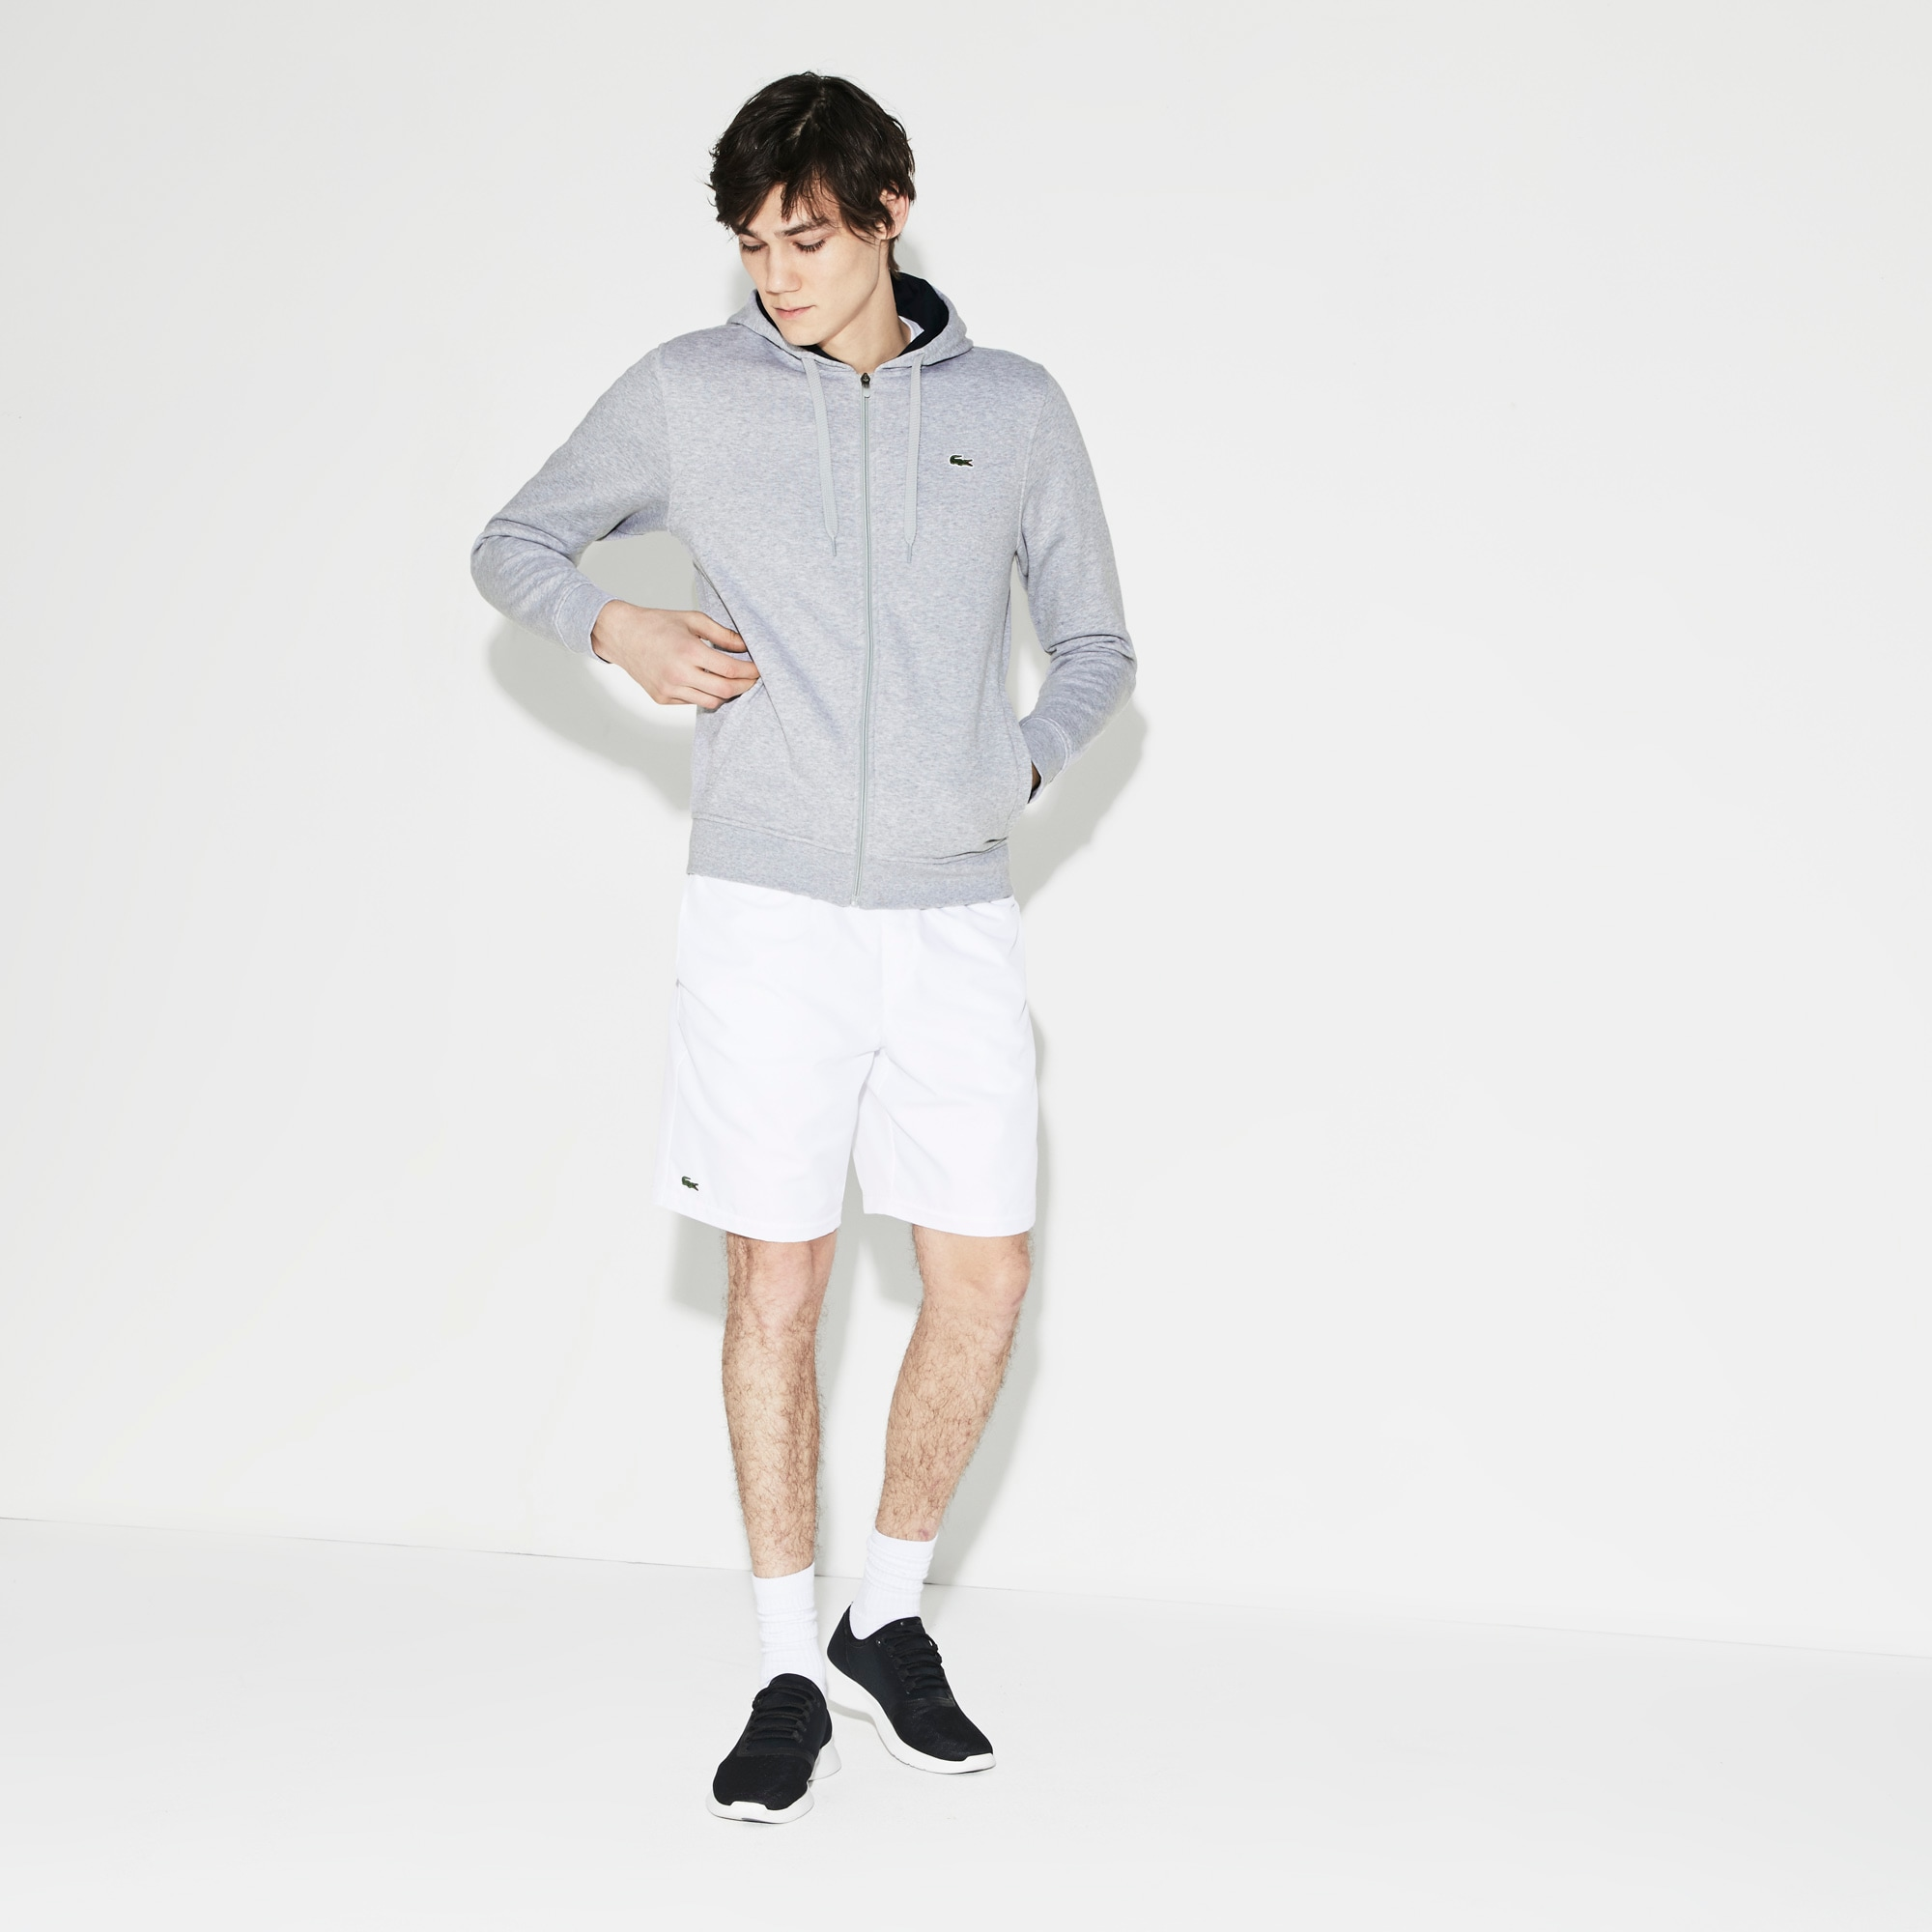 Men's SPORT Tennis Fleece Zip Up